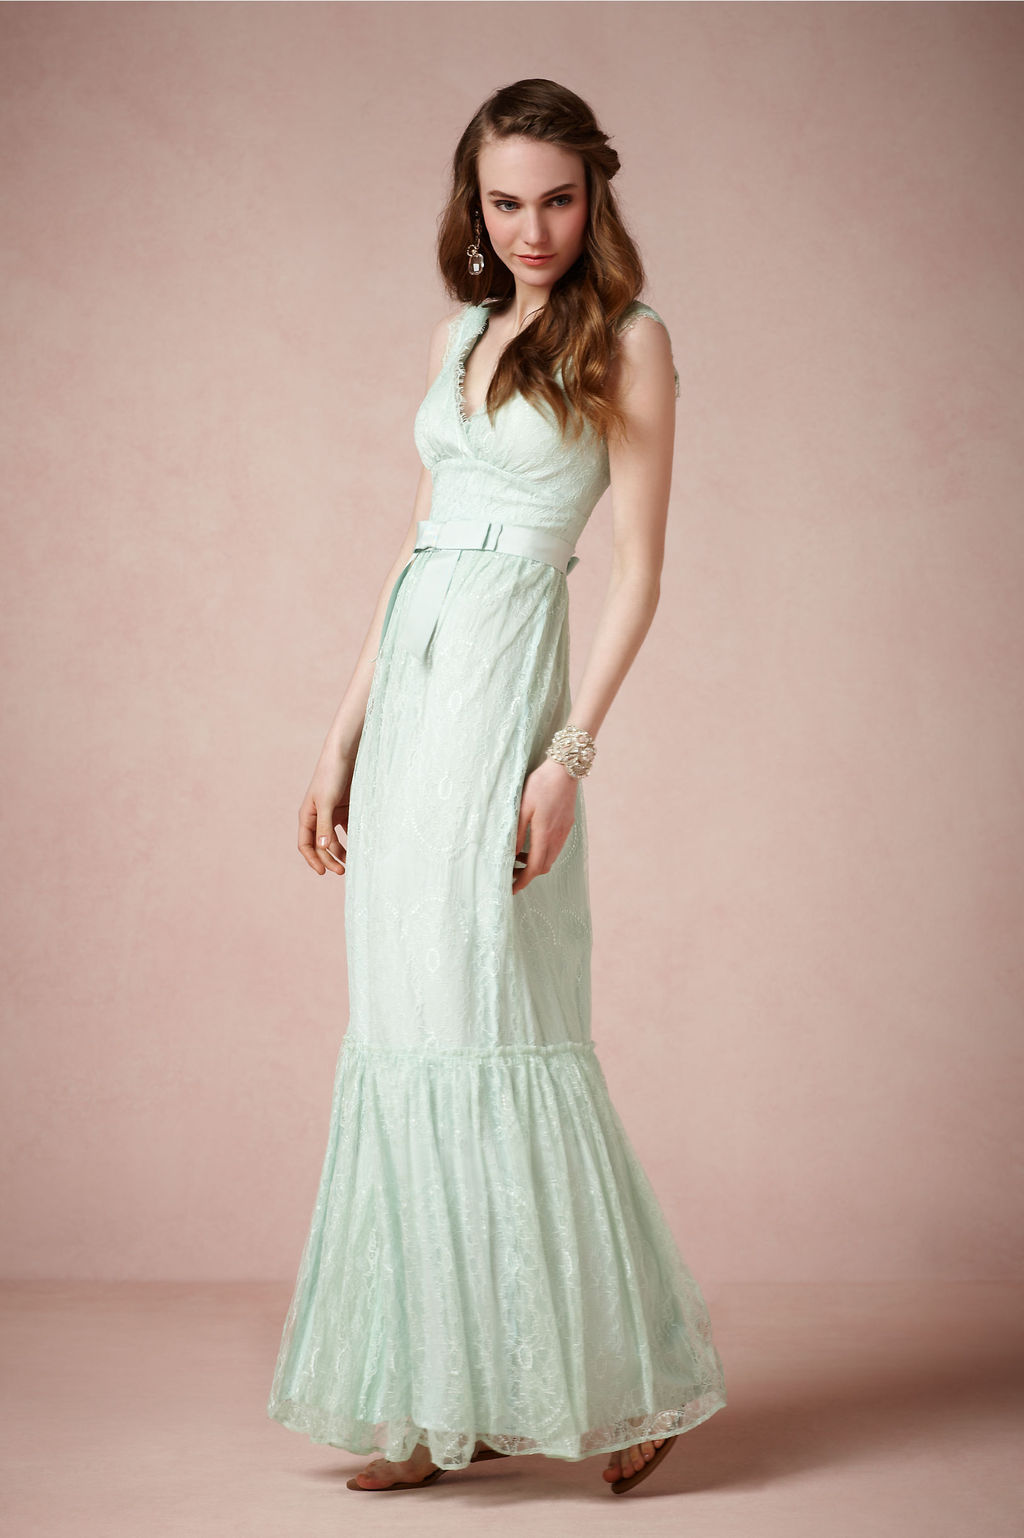 Pastel aqua lace wedding dress by bhldn | OneWed.com